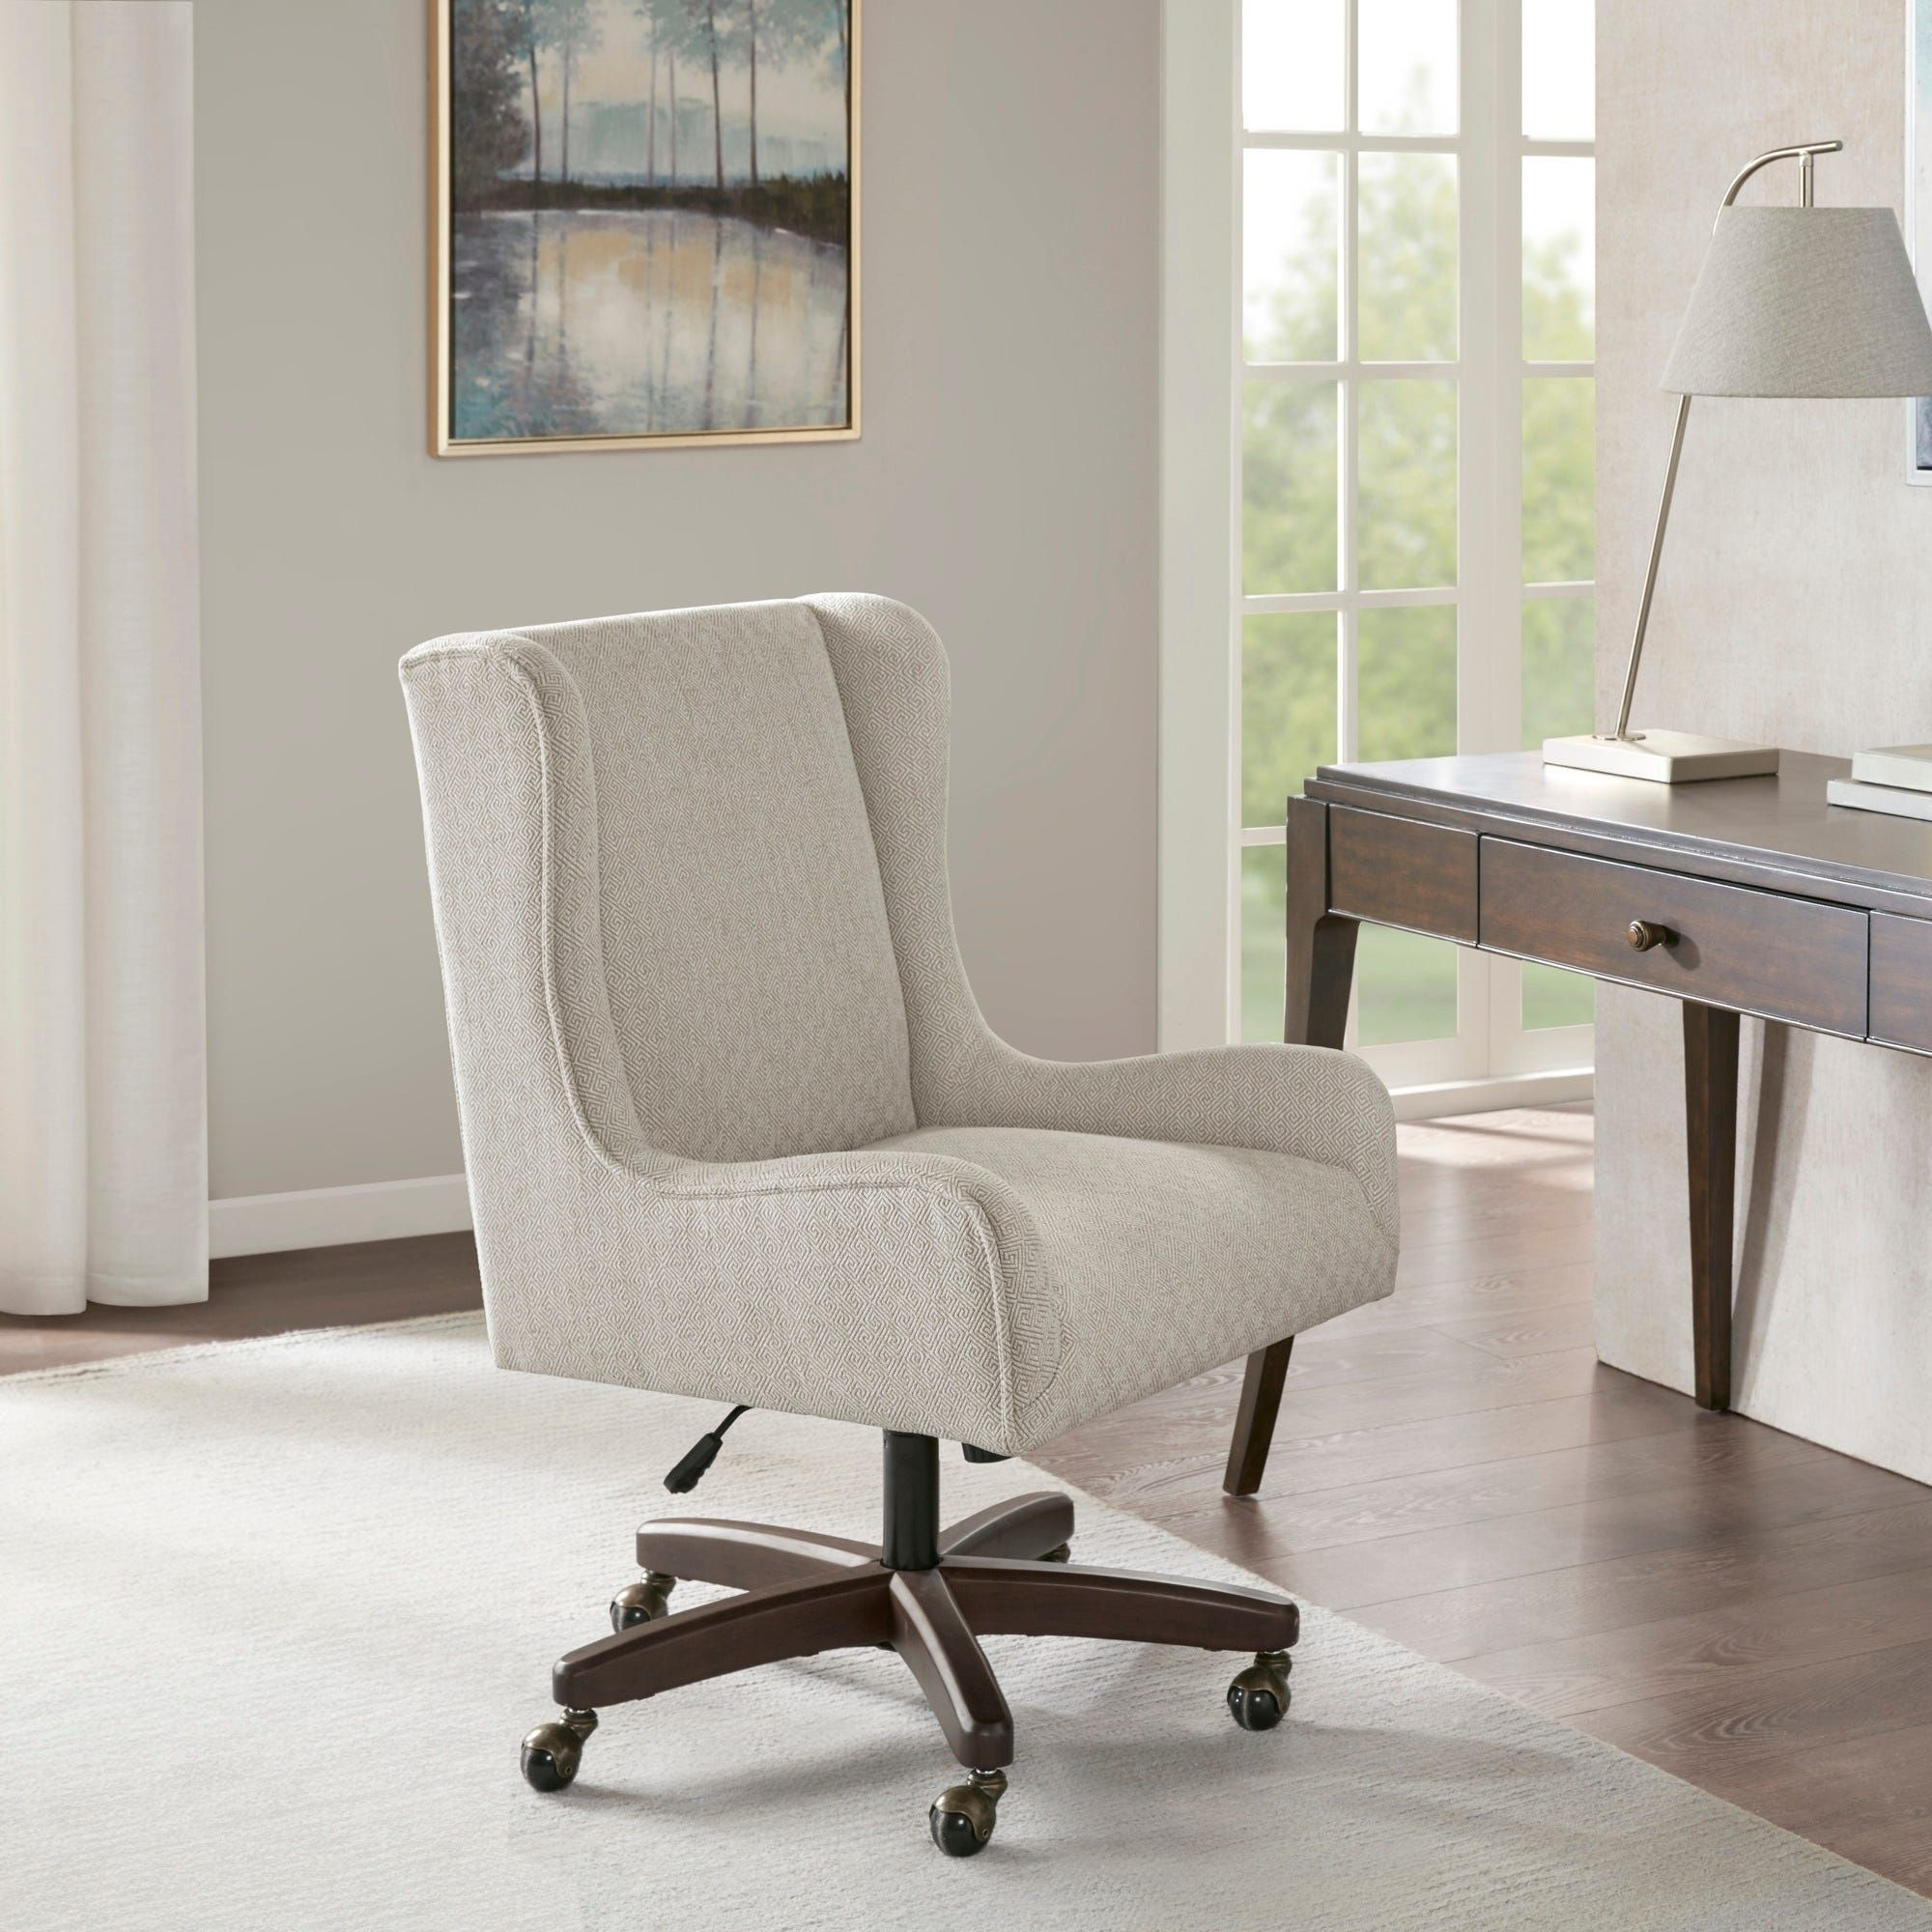 Office & Conference Room Chairs Shop Online at Overstock